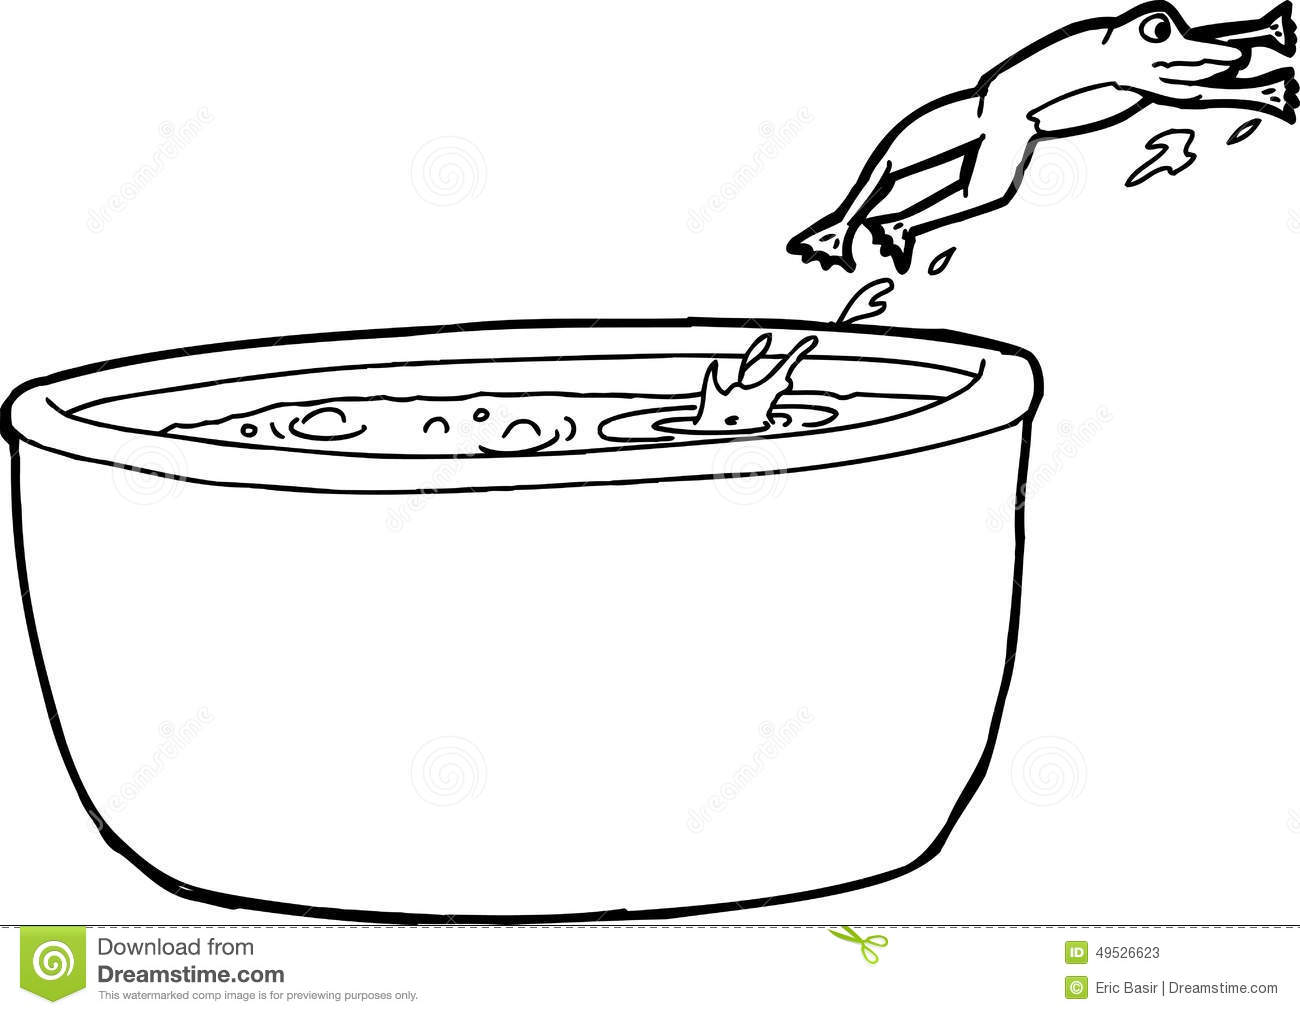 Outline Drawing Of Frog Jumping Out Of Pot Stock